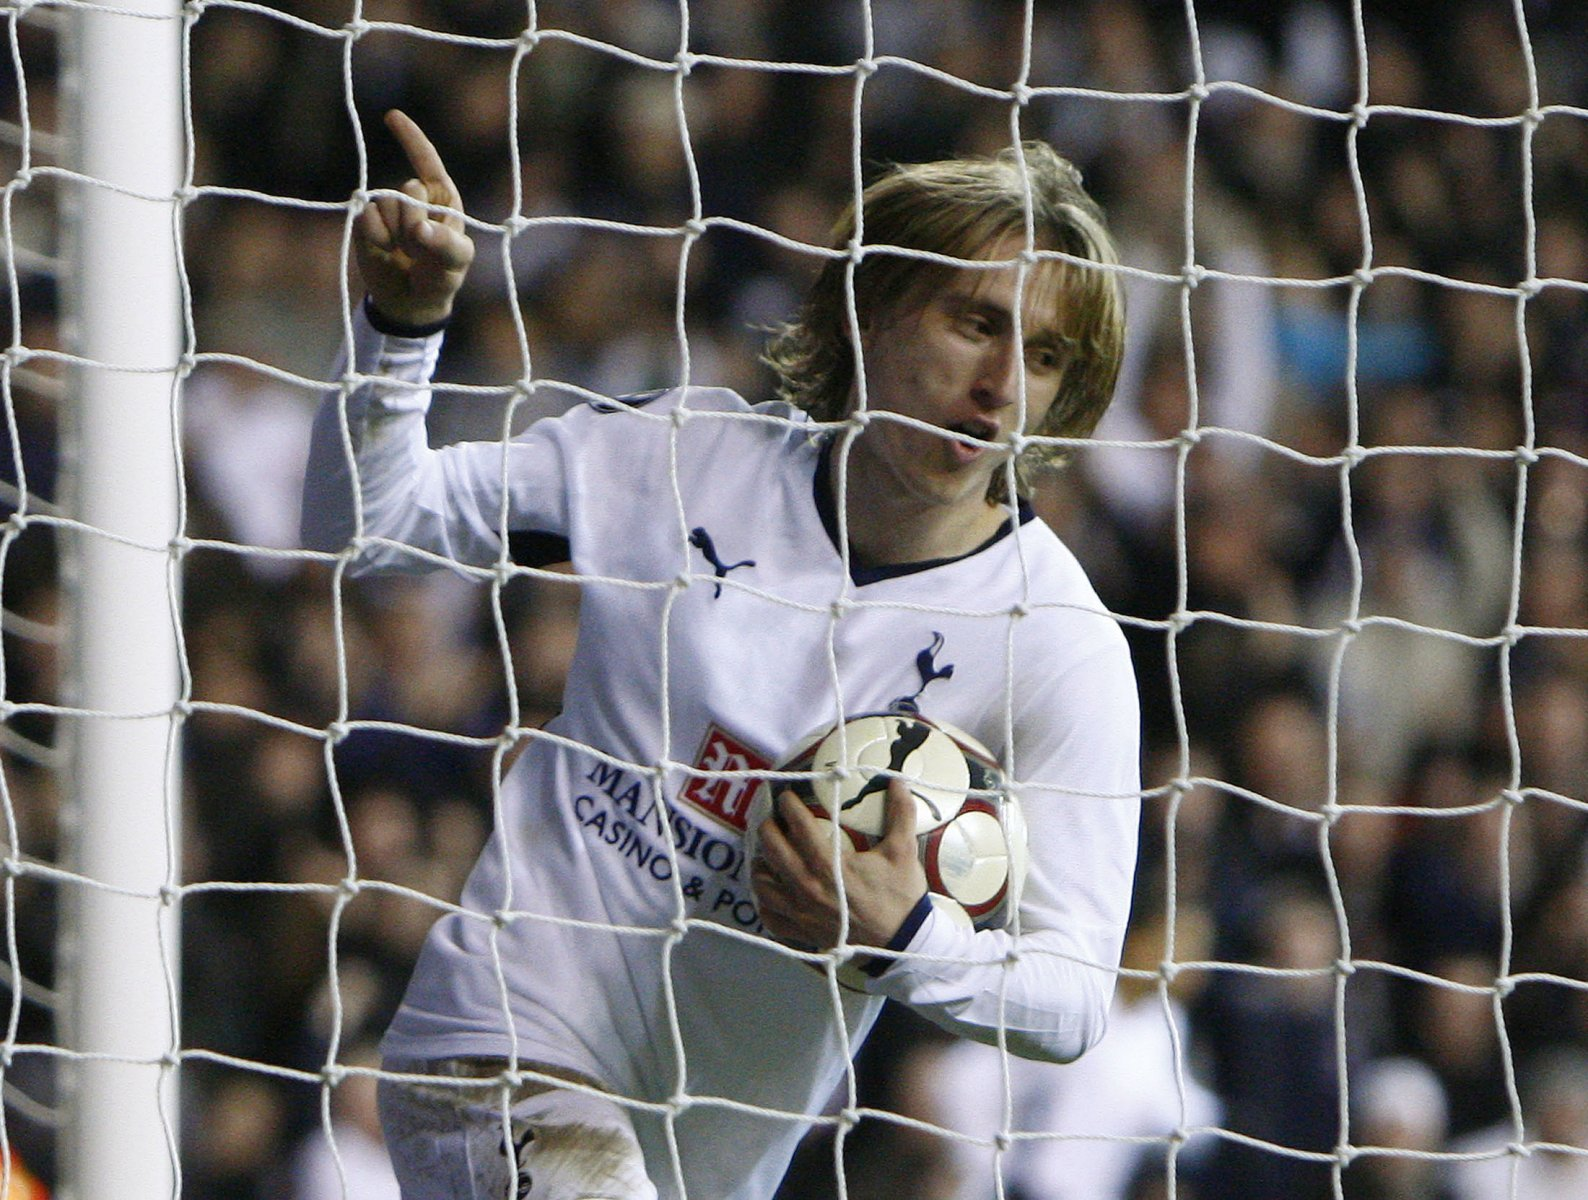 Tottenham Hotspur: Fans would love to see Luka Modric back at Spurs